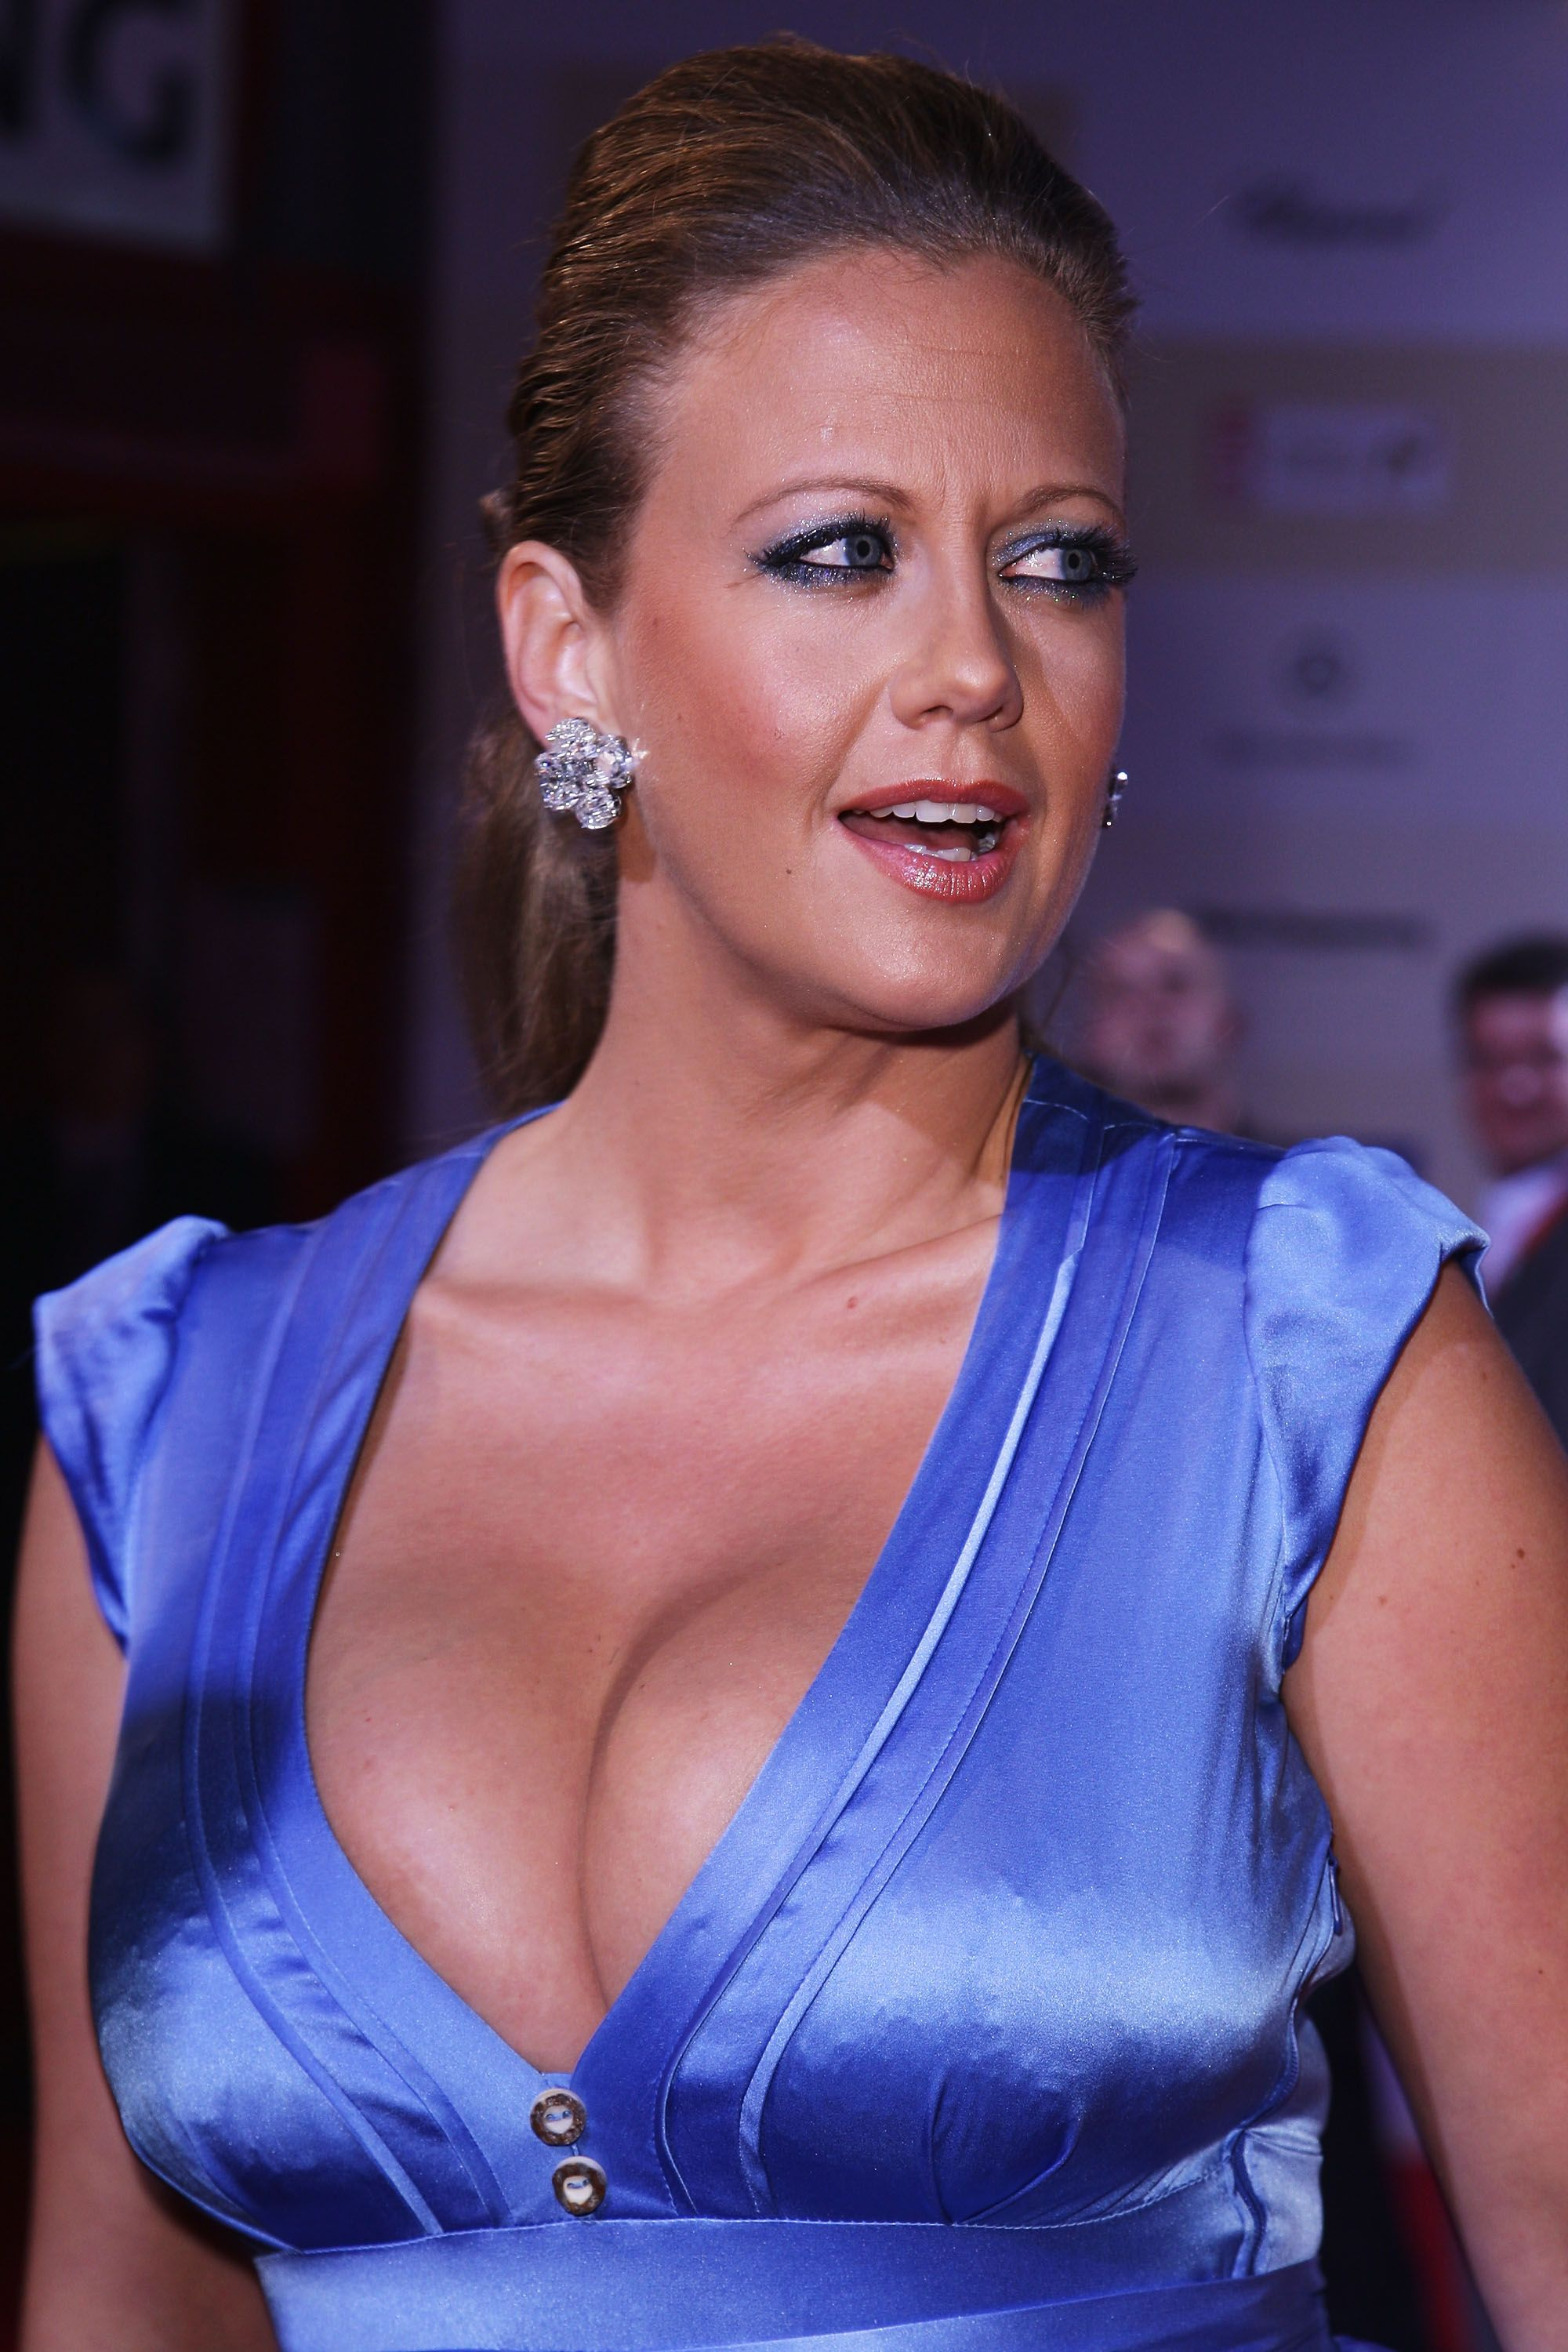 65b857660e23bd TV Host Barbara Schoeneberger attends the Tribute to Bambi 2008 charity at  the Dome in Europapark Rust on November 26